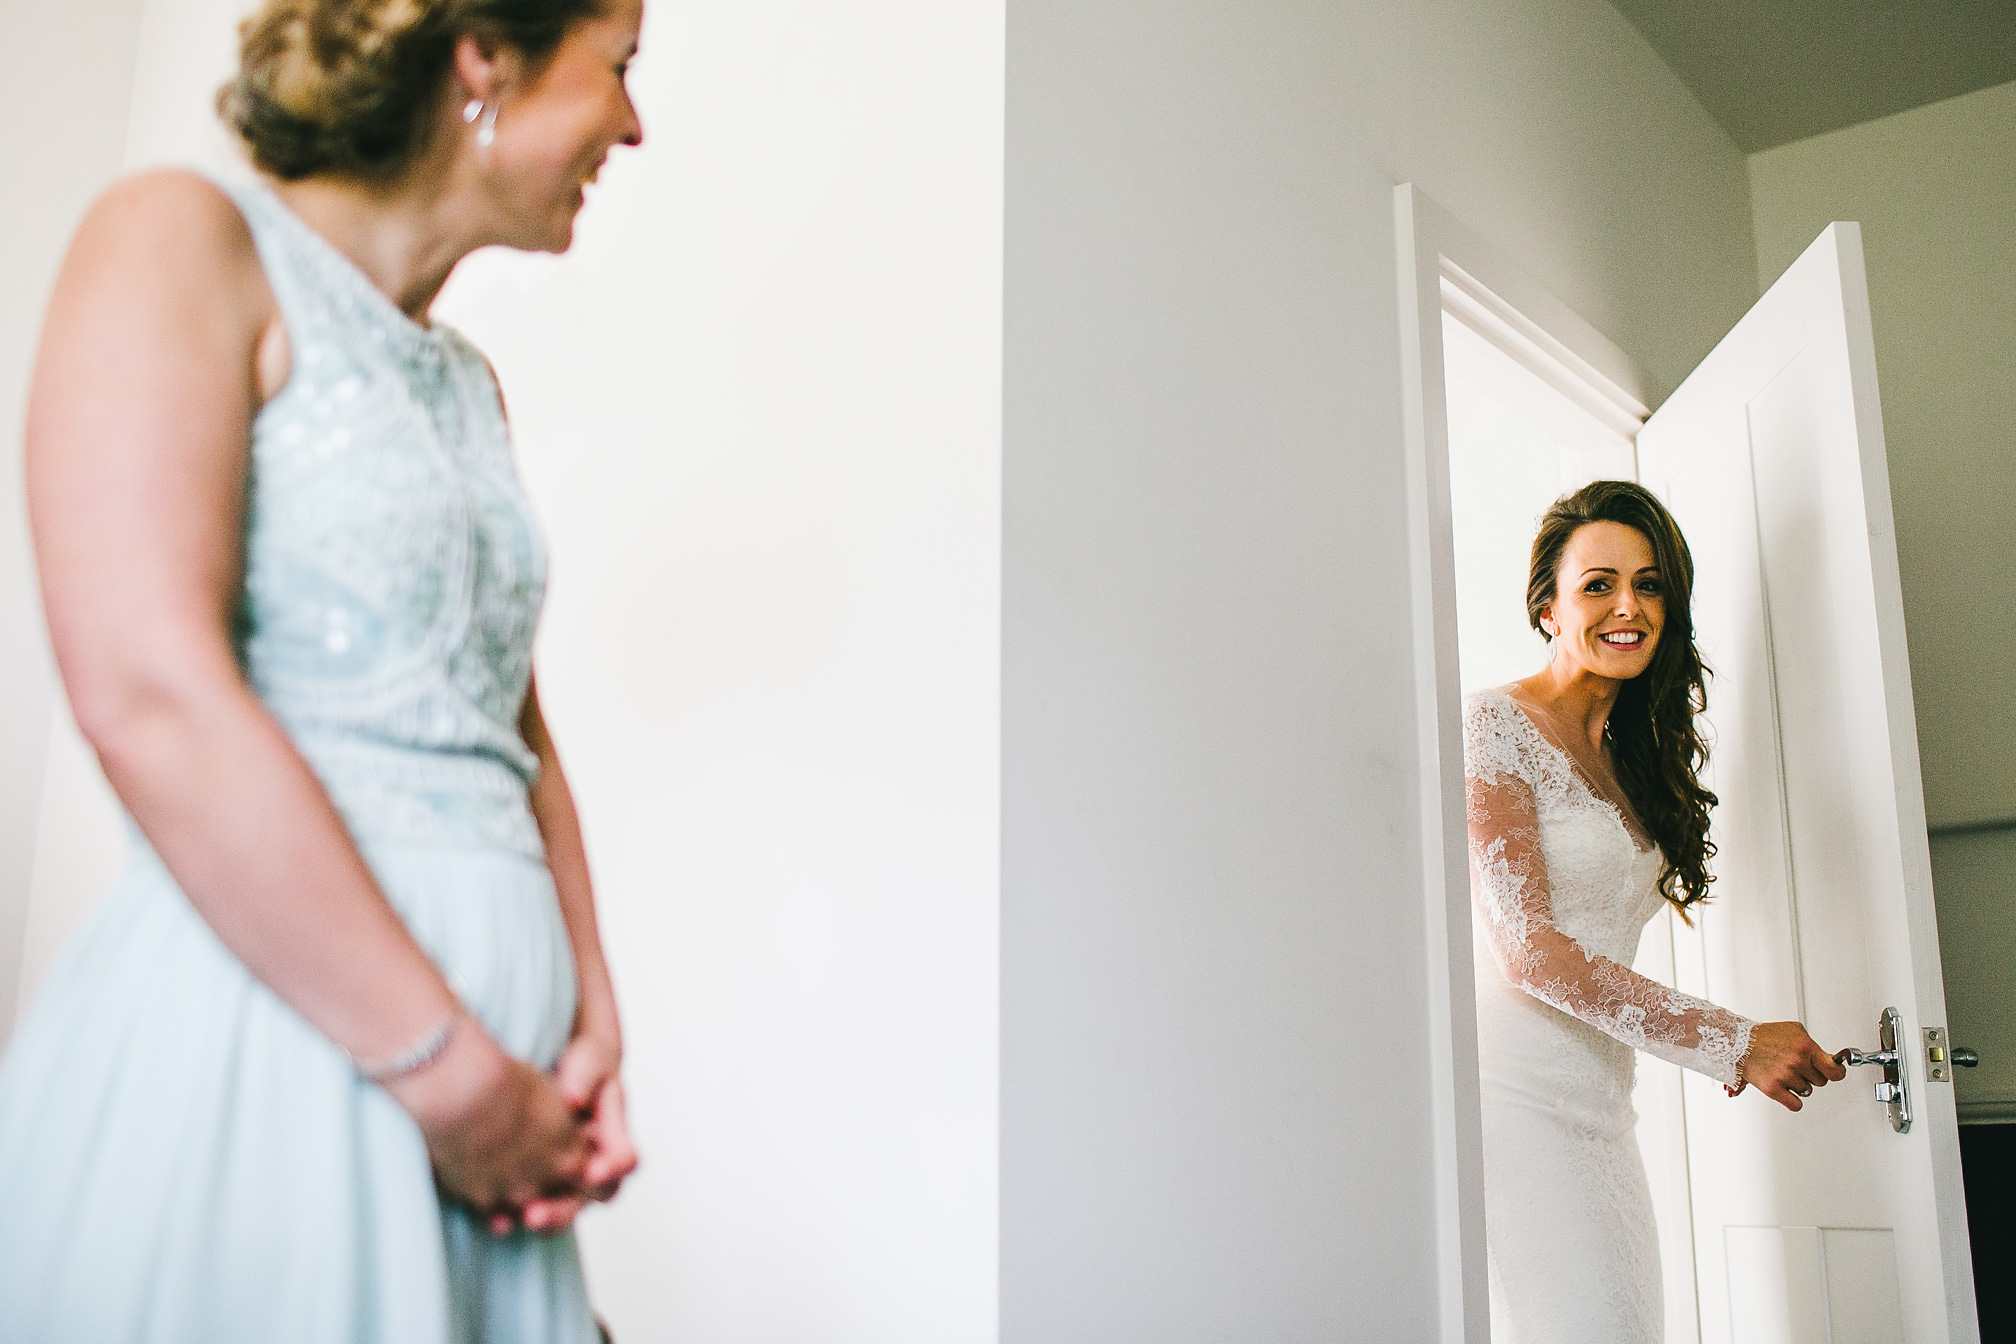 Bride coming out of the bathroom